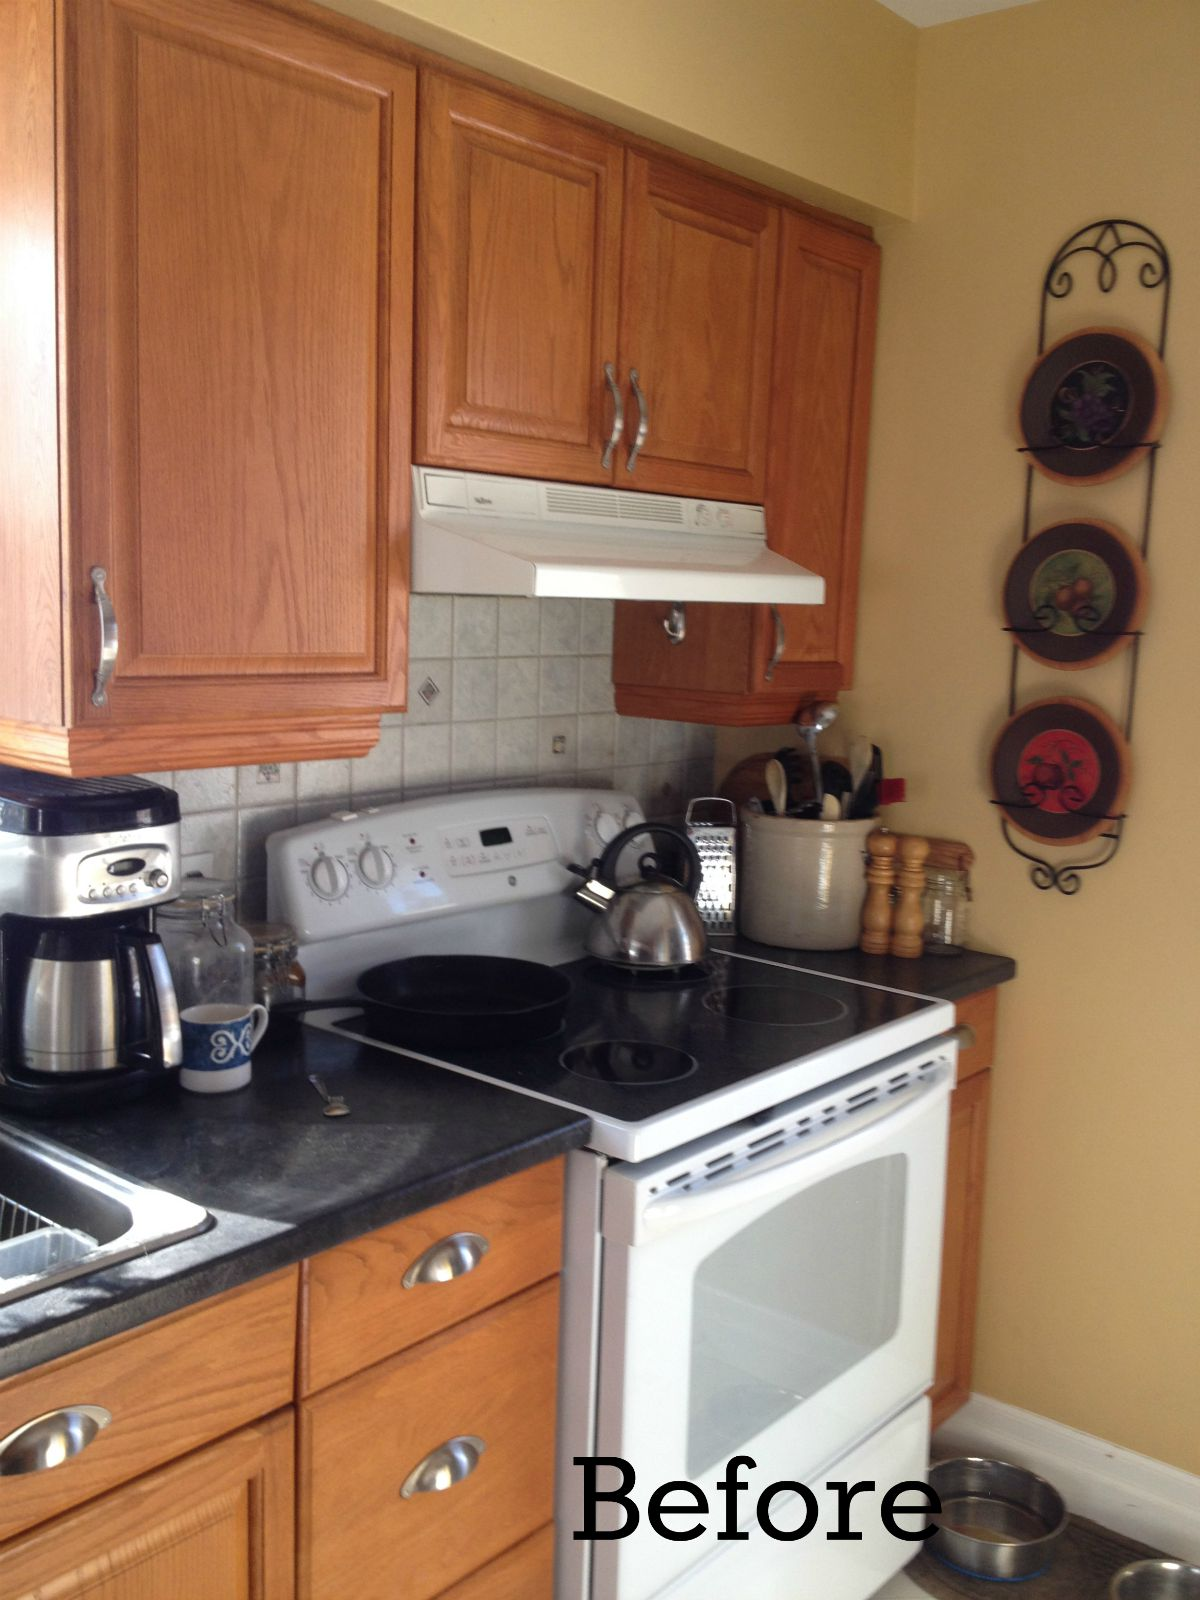 Hack Your Kitchen For An Over The Range Microwave Update Way Less Cash Frugal Family Times